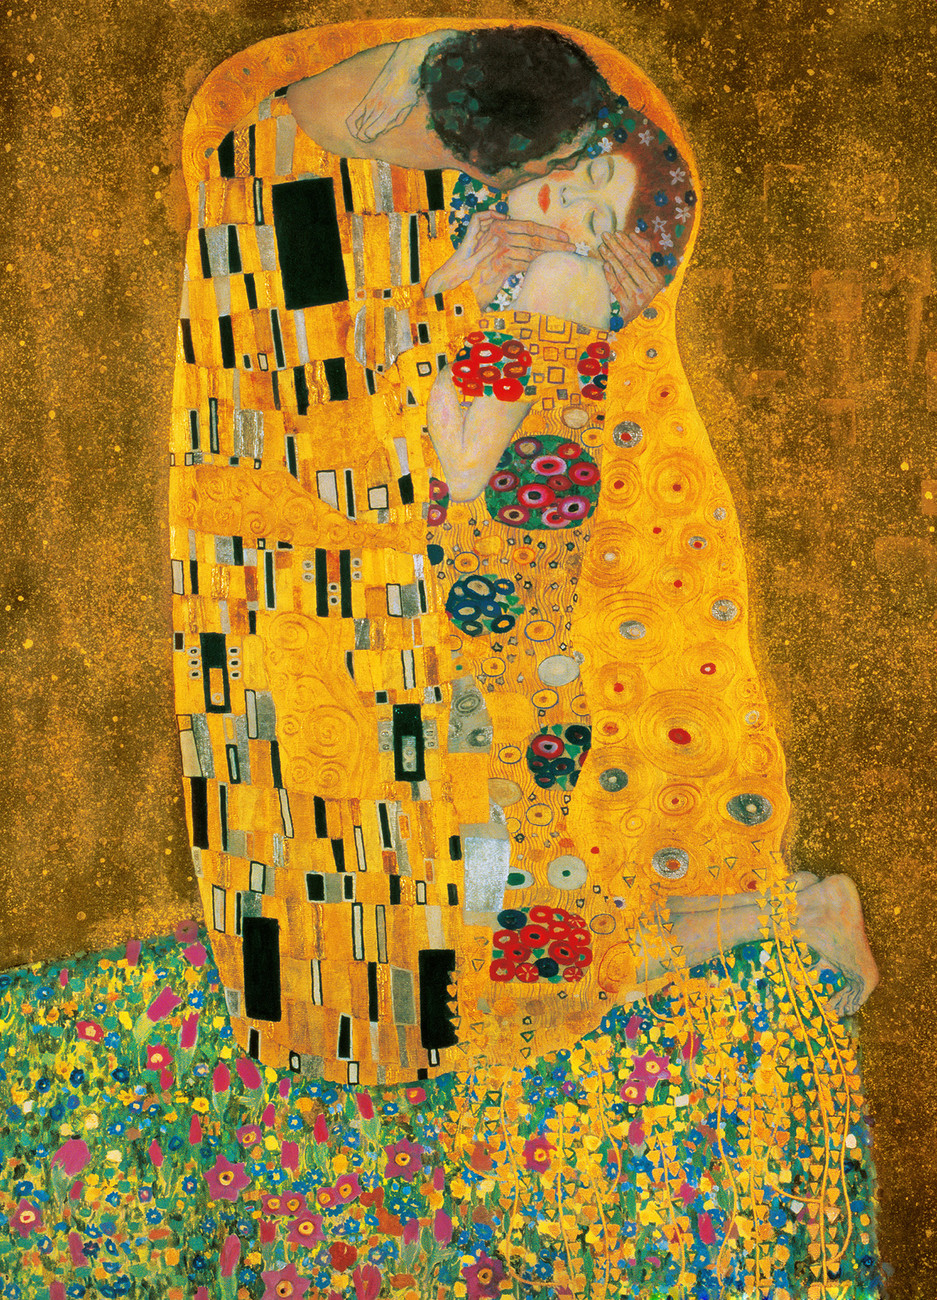 fototapete tapete gustav klimt der kuss 1907 1908 bei europosters kostenloser versand. Black Bedroom Furniture Sets. Home Design Ideas